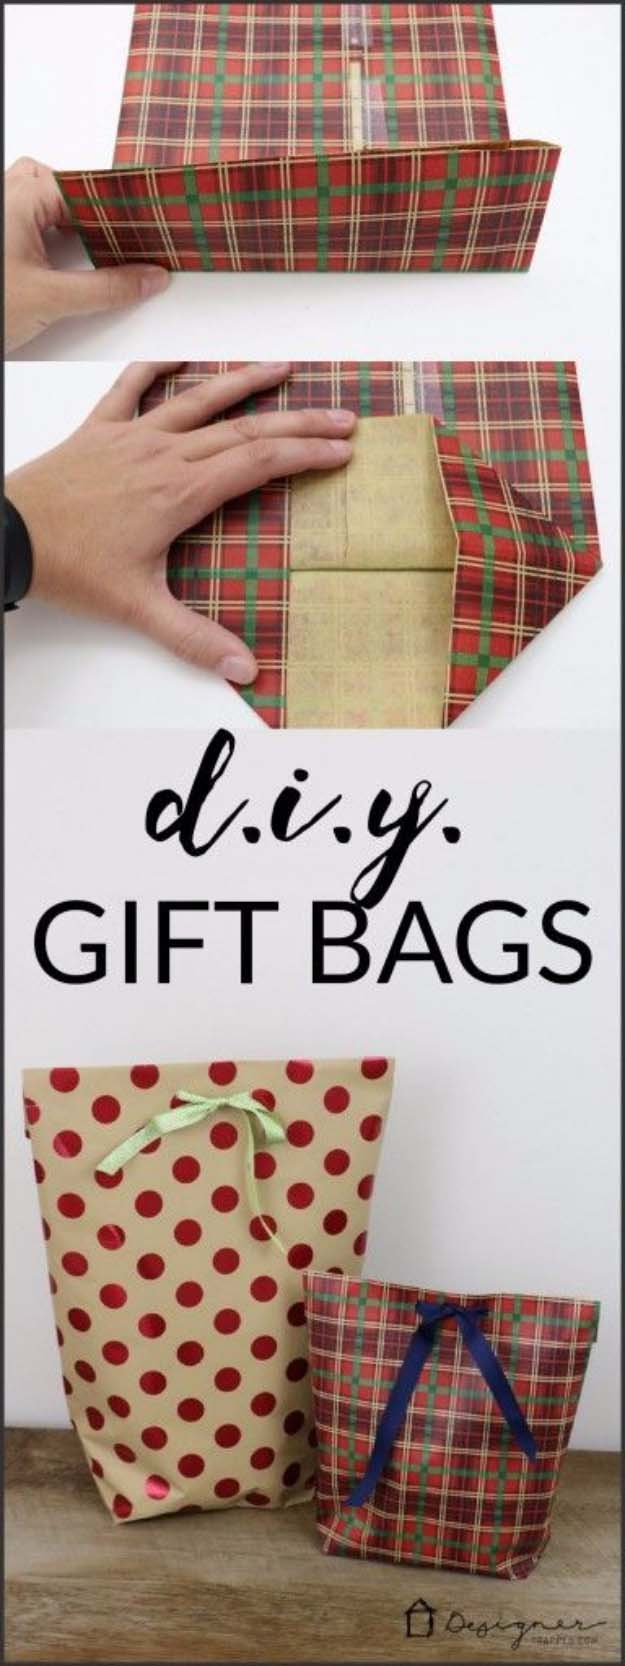 DIY Gift Wrapping Ideas - How To Wrap A Present - Tutorials, Cool Ideas and Instructions | Cute Gift Wrap Ideas for Christmas, Birthdays and Holidays | Tips for Bows and Creative Wrapping Papers | DIY Christmas Gift Bag #gifts #diys